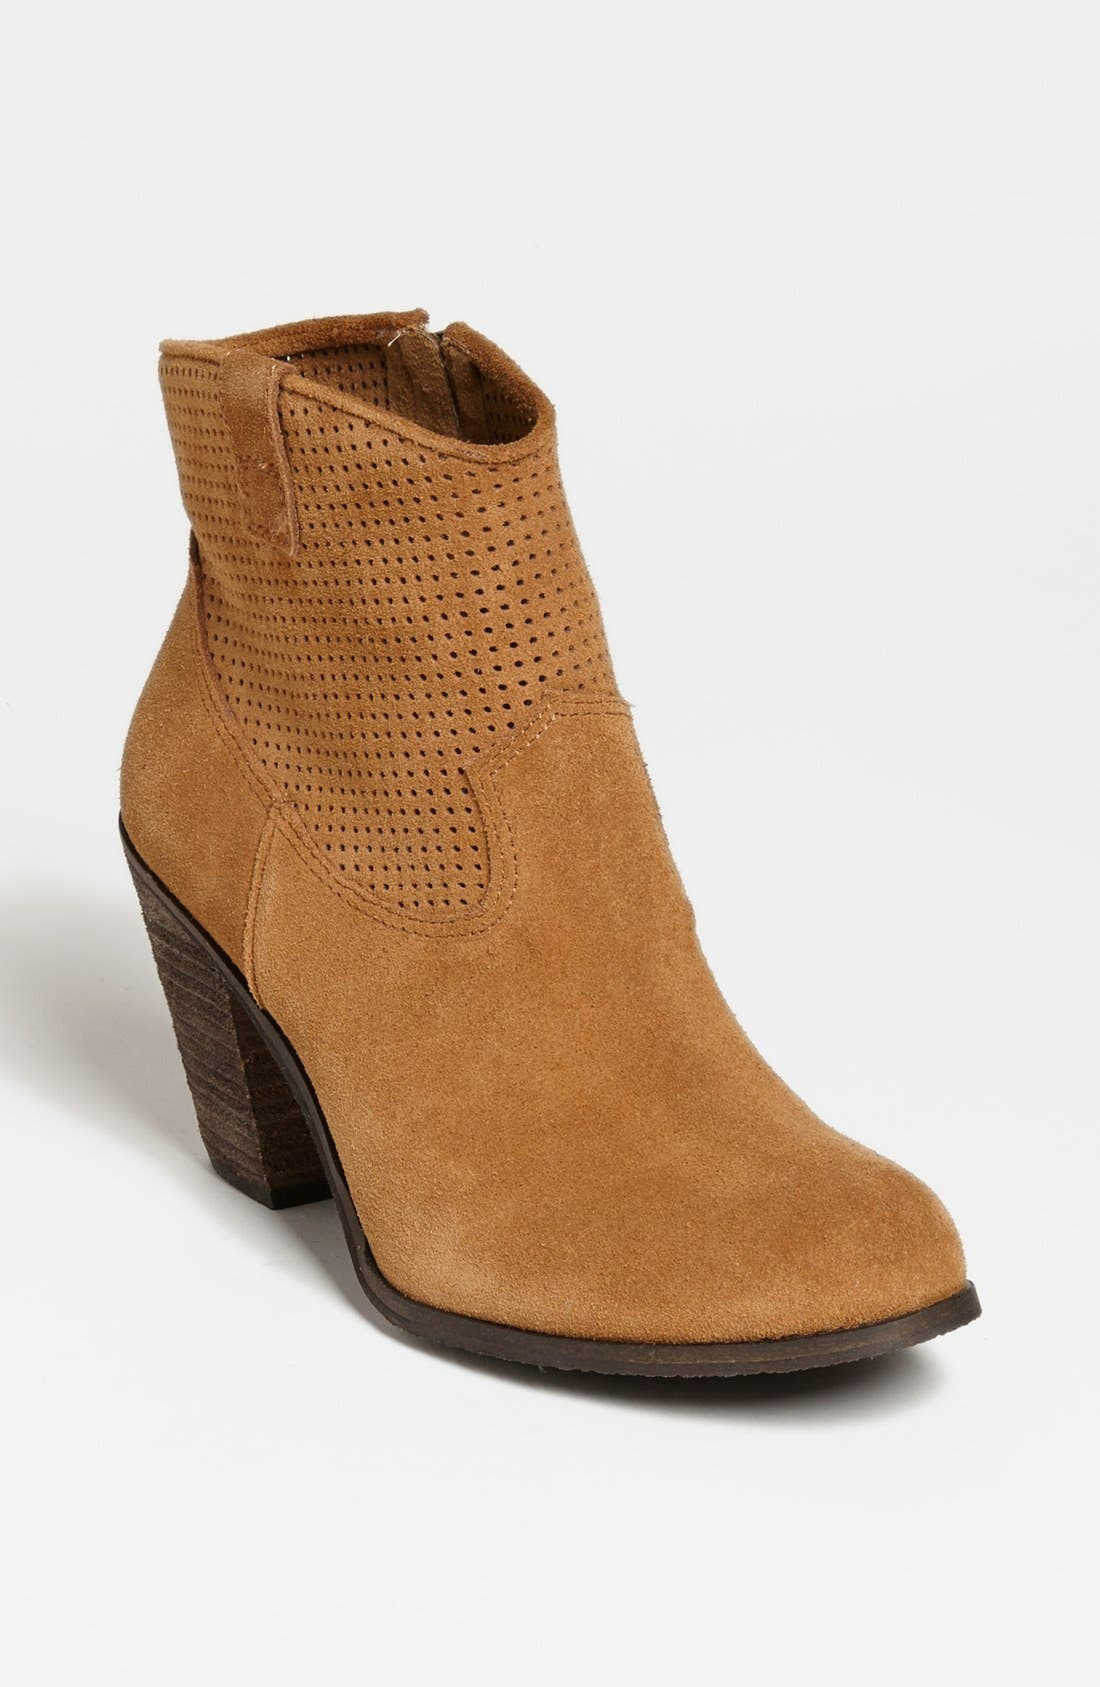 Alternate Image 1 Selected - Vince Camuto 'Holden' Bootie